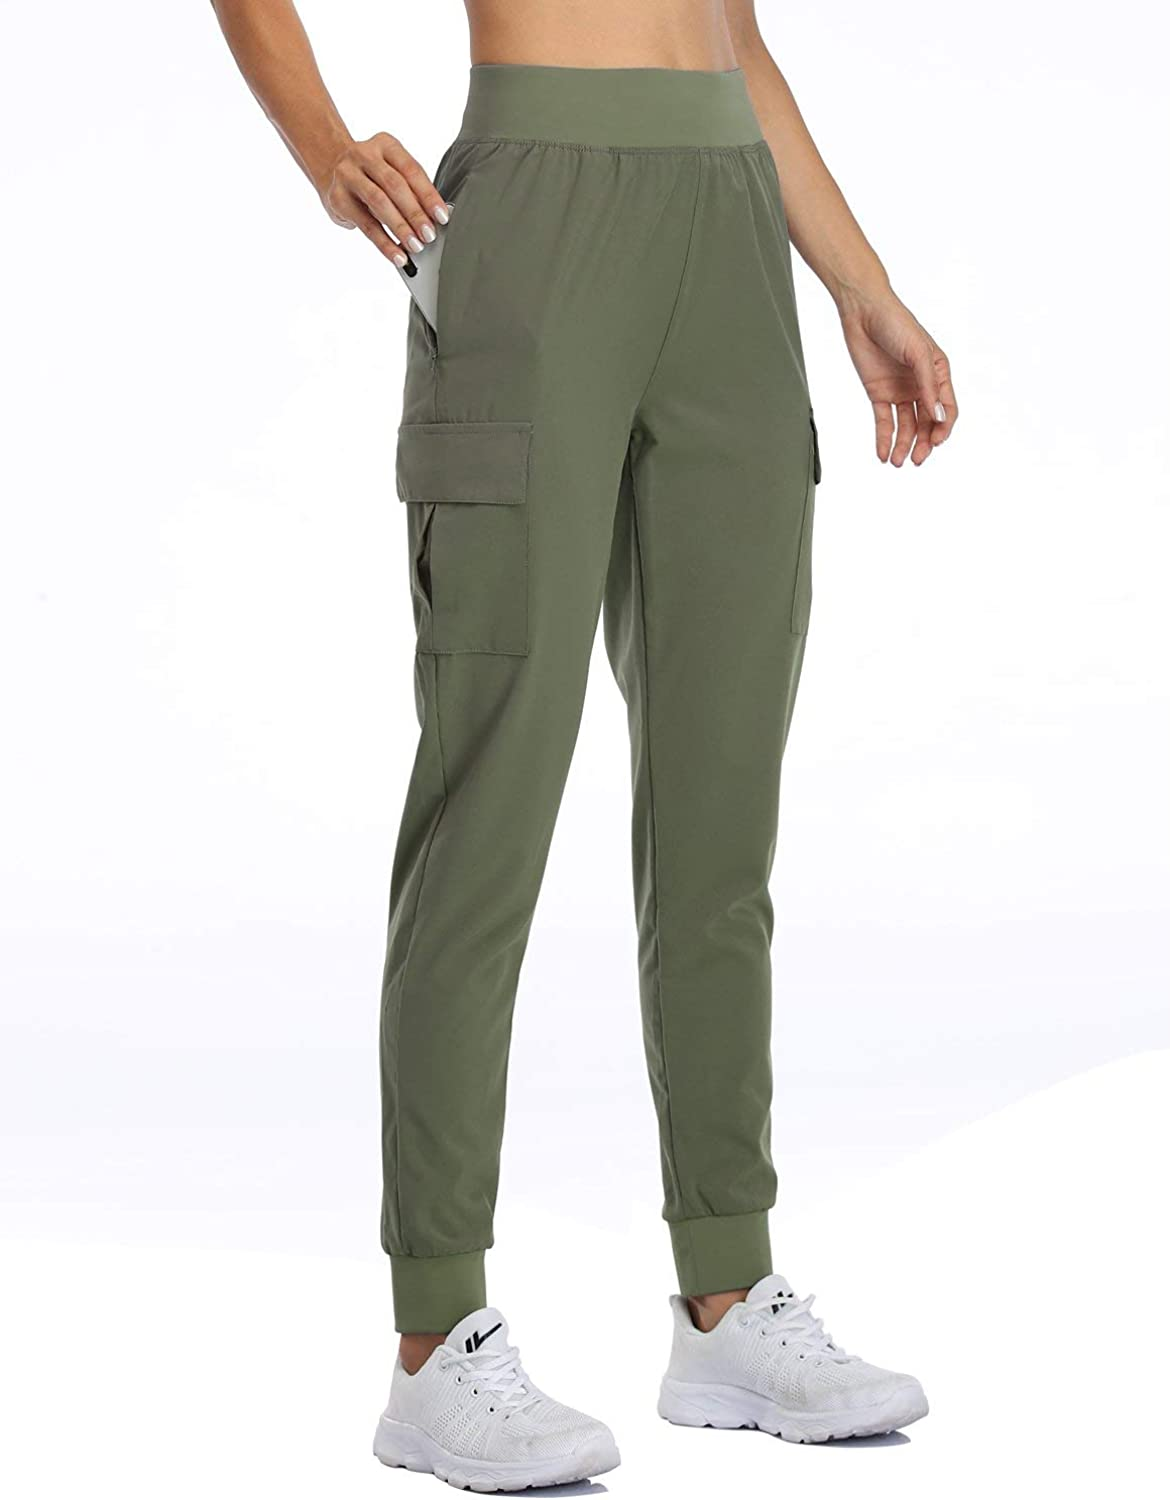 Willit Women's Cargo Columbus Mall Joggers Workout Lightweight Max 58% OFF Athletic Pants